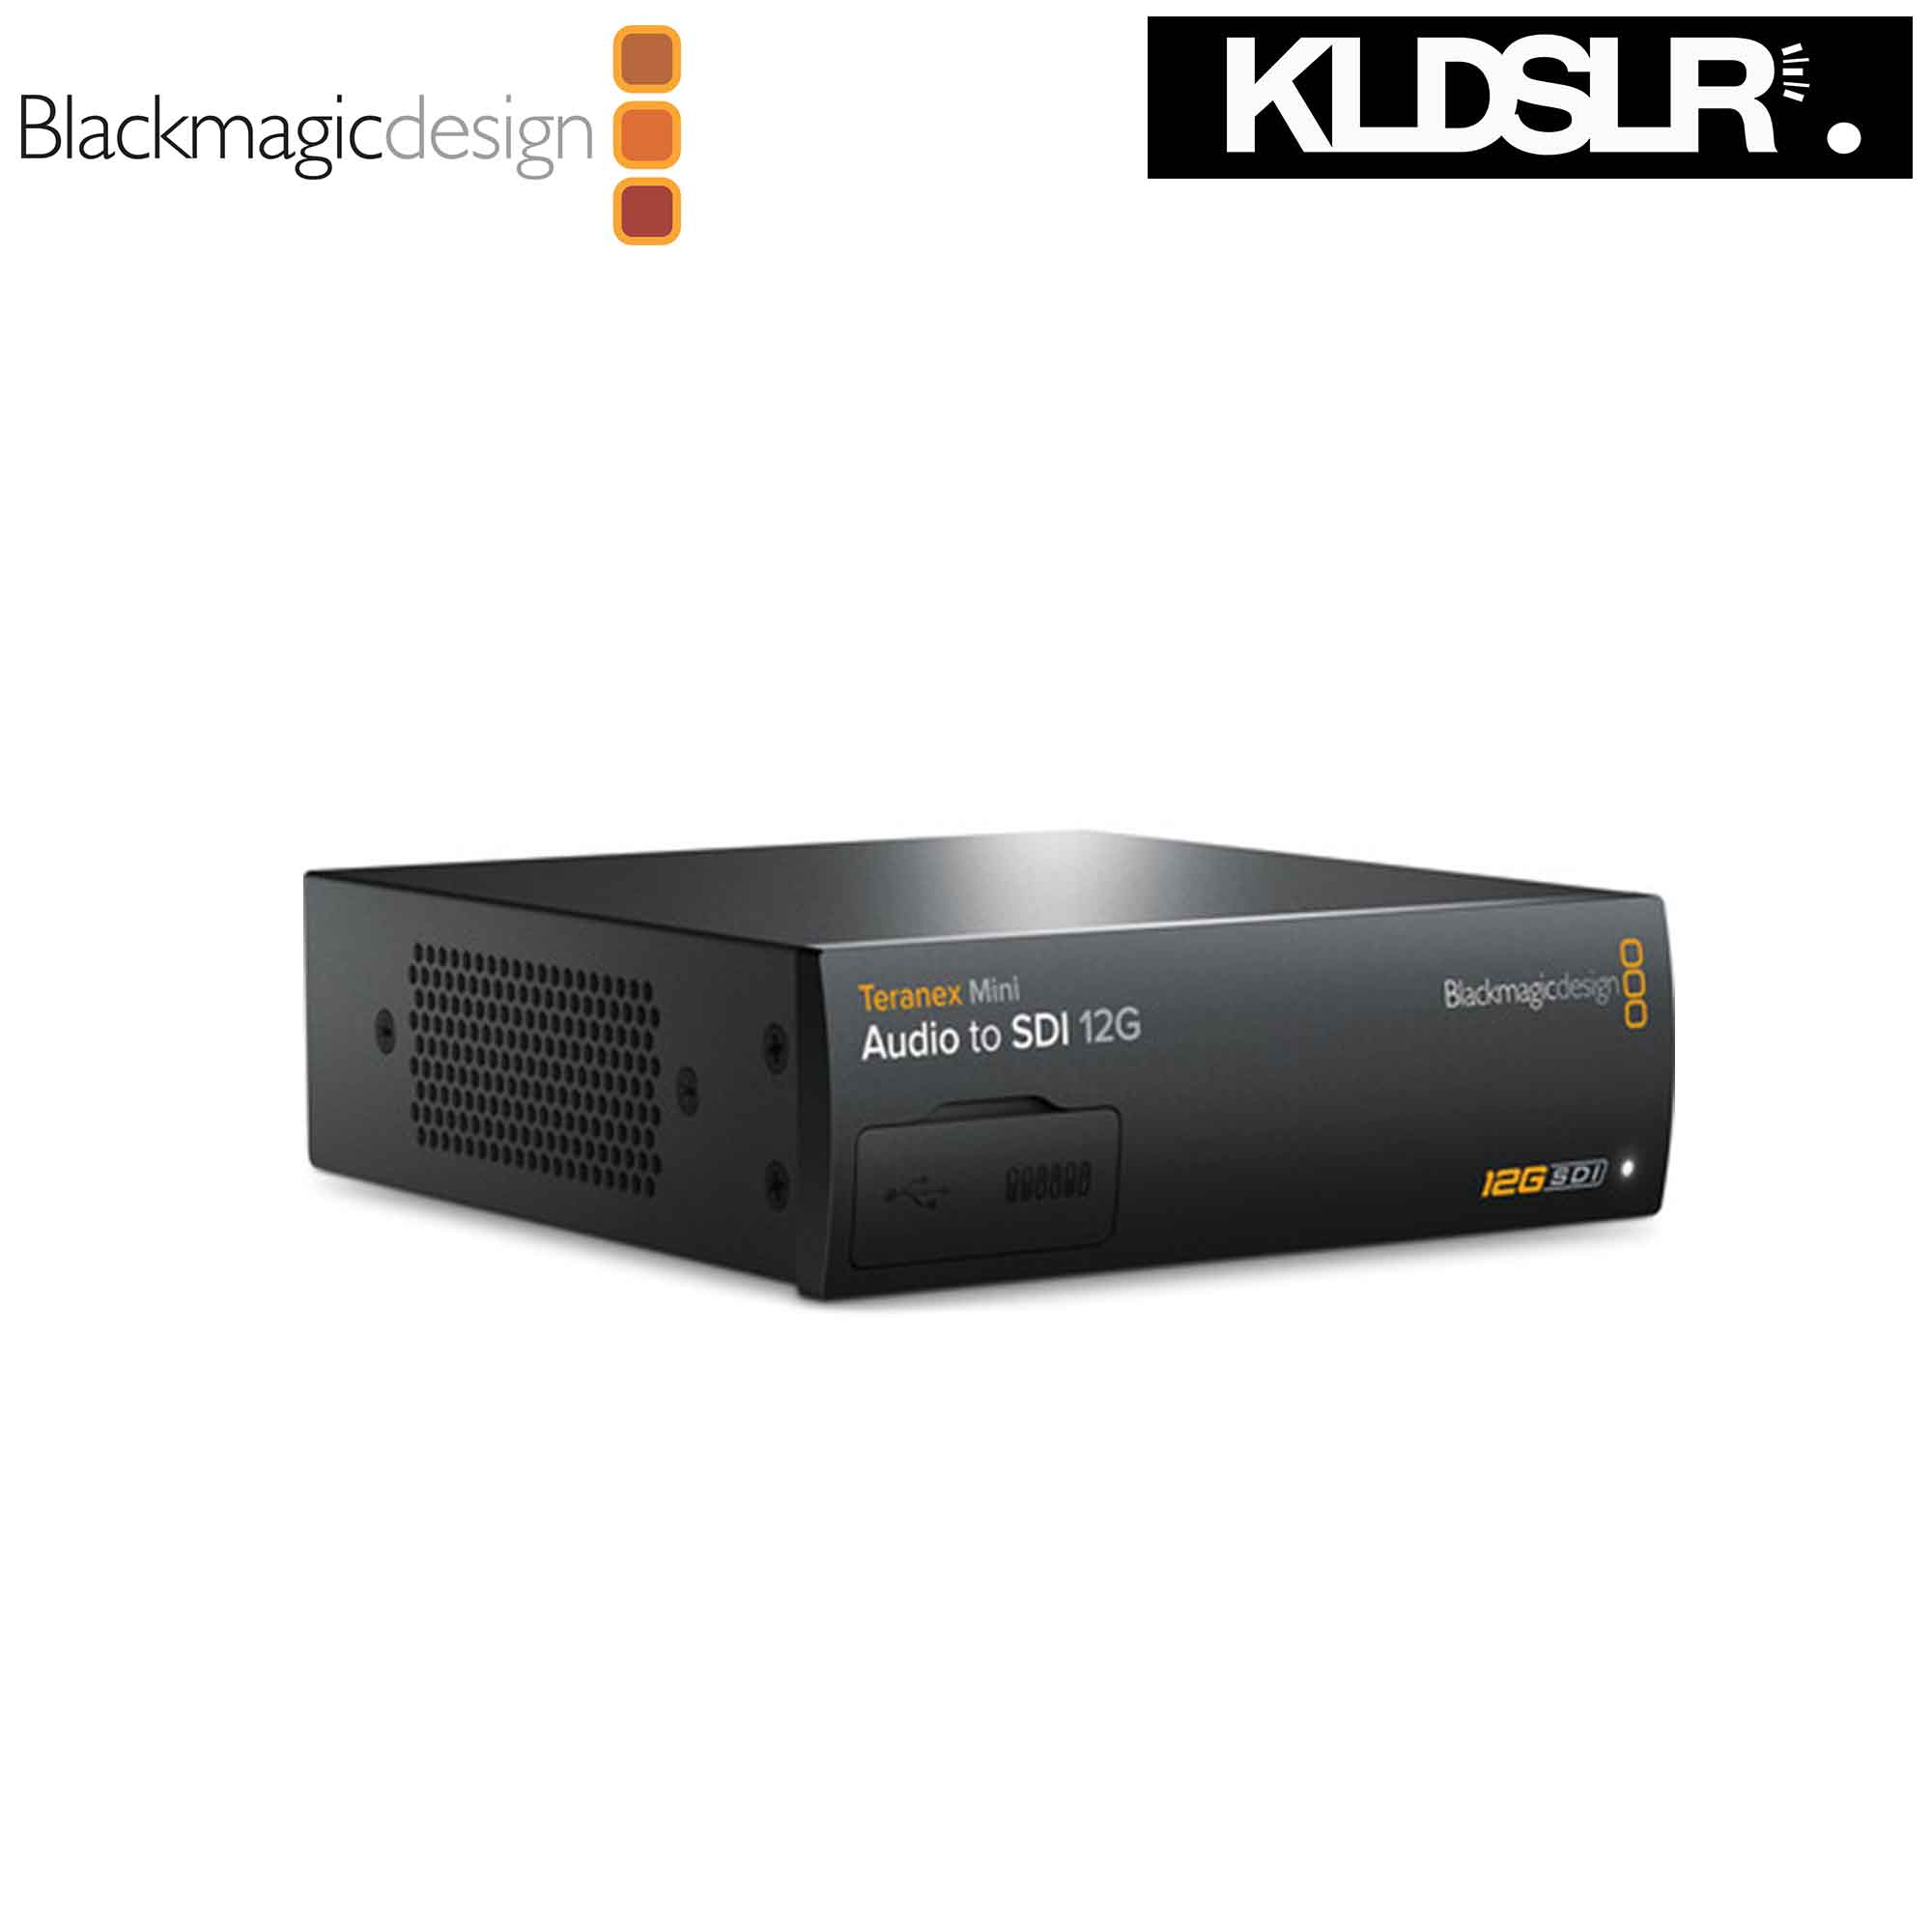 Blackmagic Design Teranex Mini Audio to SDI 12G Converter (Blackmagic Malaysia)